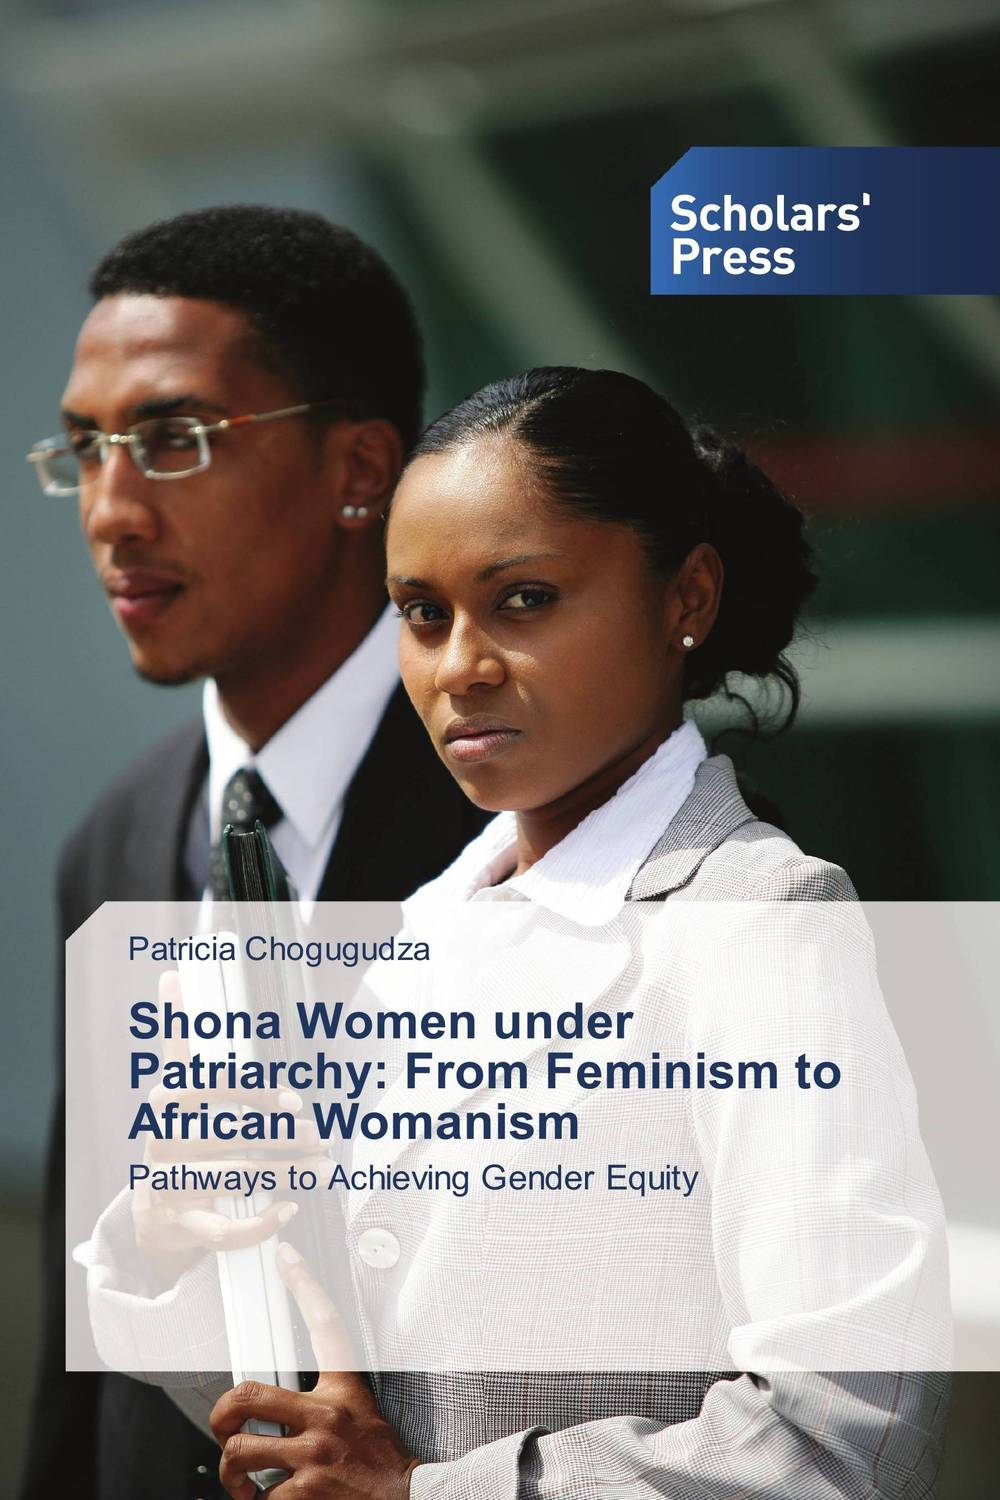 Shona Women under Patriarchy: From Feminism to African Womanism